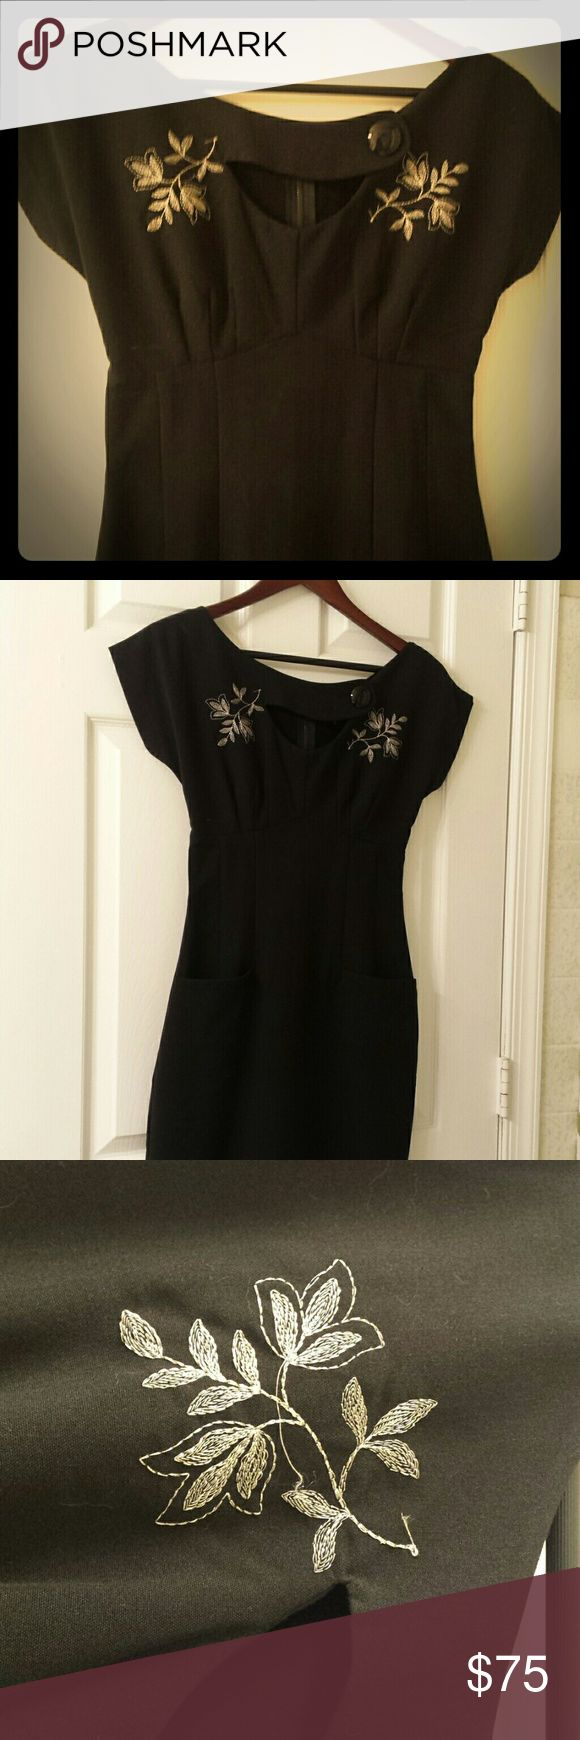 Betty Page dress Shoulder embroidery in silver. Very flattering fit Betty Page Dresses